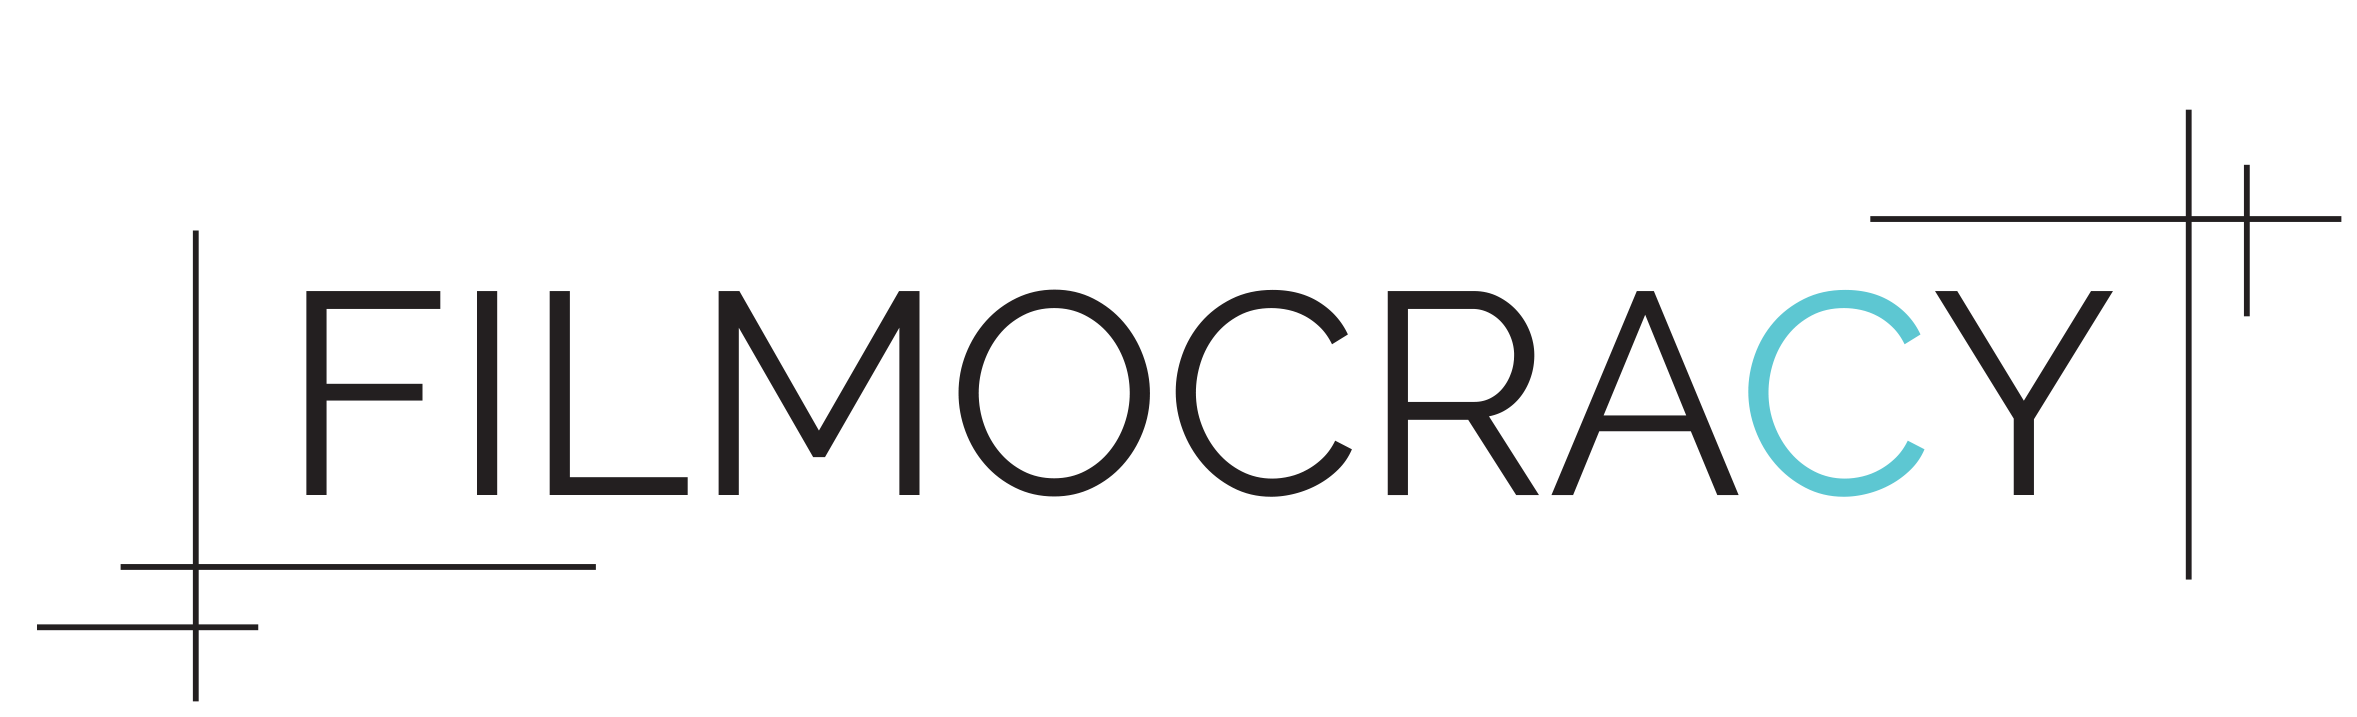 Filmocracy Logo Transparent.png